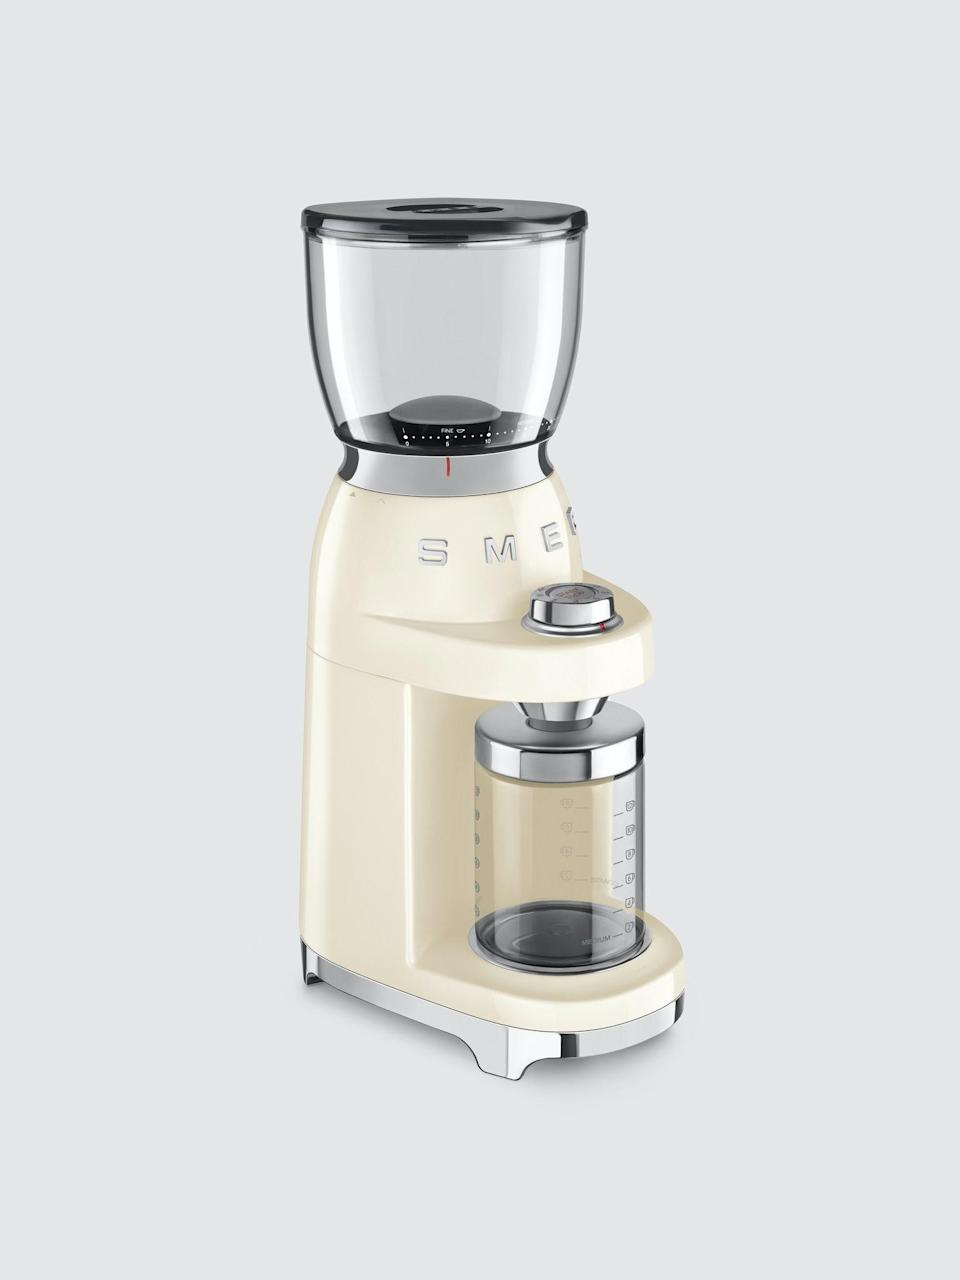 """<h2>Best Quiet Coffee Grinder<br></h2><br><h3>Smeg Coffee Grinder</h3><br>When we think of stunning kitchen accessories and appliances, we think Smeg. Reviewers applaud this grinder not only for its countertop appeal but also for its powerful yet magically quiet grind. <br><br><strong>Blade Type:</strong> Burr<br><br><strong>The Hype</strong>: 4.6 out of 5 stars and 11 reviews on <a href=""""https://www.google.com/shopping/product/16544680367234602904/reviews"""" rel=""""nofollow noopener"""" target=""""_blank"""" data-ylk=""""slk:Google"""" class=""""link rapid-noclick-resp"""">Google</a><br><br><strong>Rise & Grinders say</strong>: """"Love this Smeg grinder. I'm really impressed with the quality and ease of use. It's a very quiet, powerful grinder with a wide selection of settings. I love the pre-measured options and the fact that it doesn't send grounds everywhere. And of course, it's a beautifully designed appliance that looks great on my counter. Love it so far. """"<br><br><em>Shop <a href=""""https://www.verishop.com/smeg/coffee-machine/coffee-grinder/p4798799216663"""" rel=""""nofollow noopener"""" target=""""_blank"""" data-ylk=""""slk:Smeg"""" class=""""link rapid-noclick-resp""""><strong>Smeg</strong></a></em><br><br><strong>SMEG</strong> Coffee Grinder, $, available at <a href=""""https://go.skimresources.com/?id=30283X879131&url=https%3A%2F%2Fshop-links.co%2F1750945987995829009"""" rel=""""nofollow noopener"""" target=""""_blank"""" data-ylk=""""slk:Verishop"""" class=""""link rapid-noclick-resp"""">Verishop</a>"""